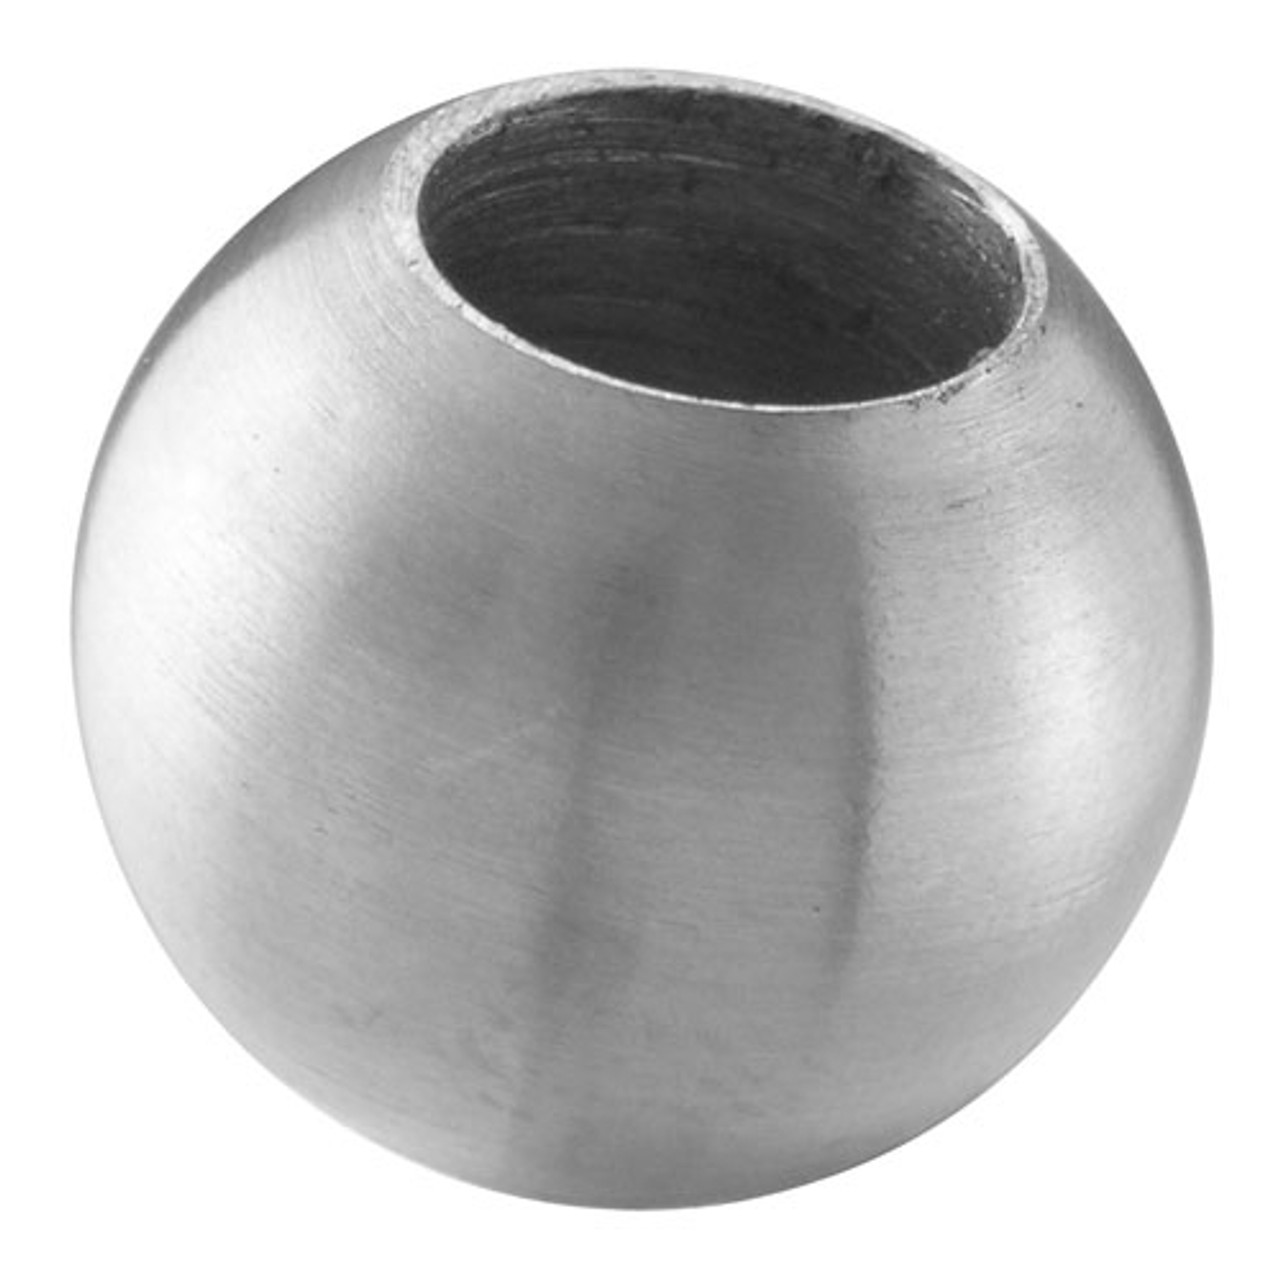 "E0128 Stainless Steel Sphere 63/64"", dead hole"